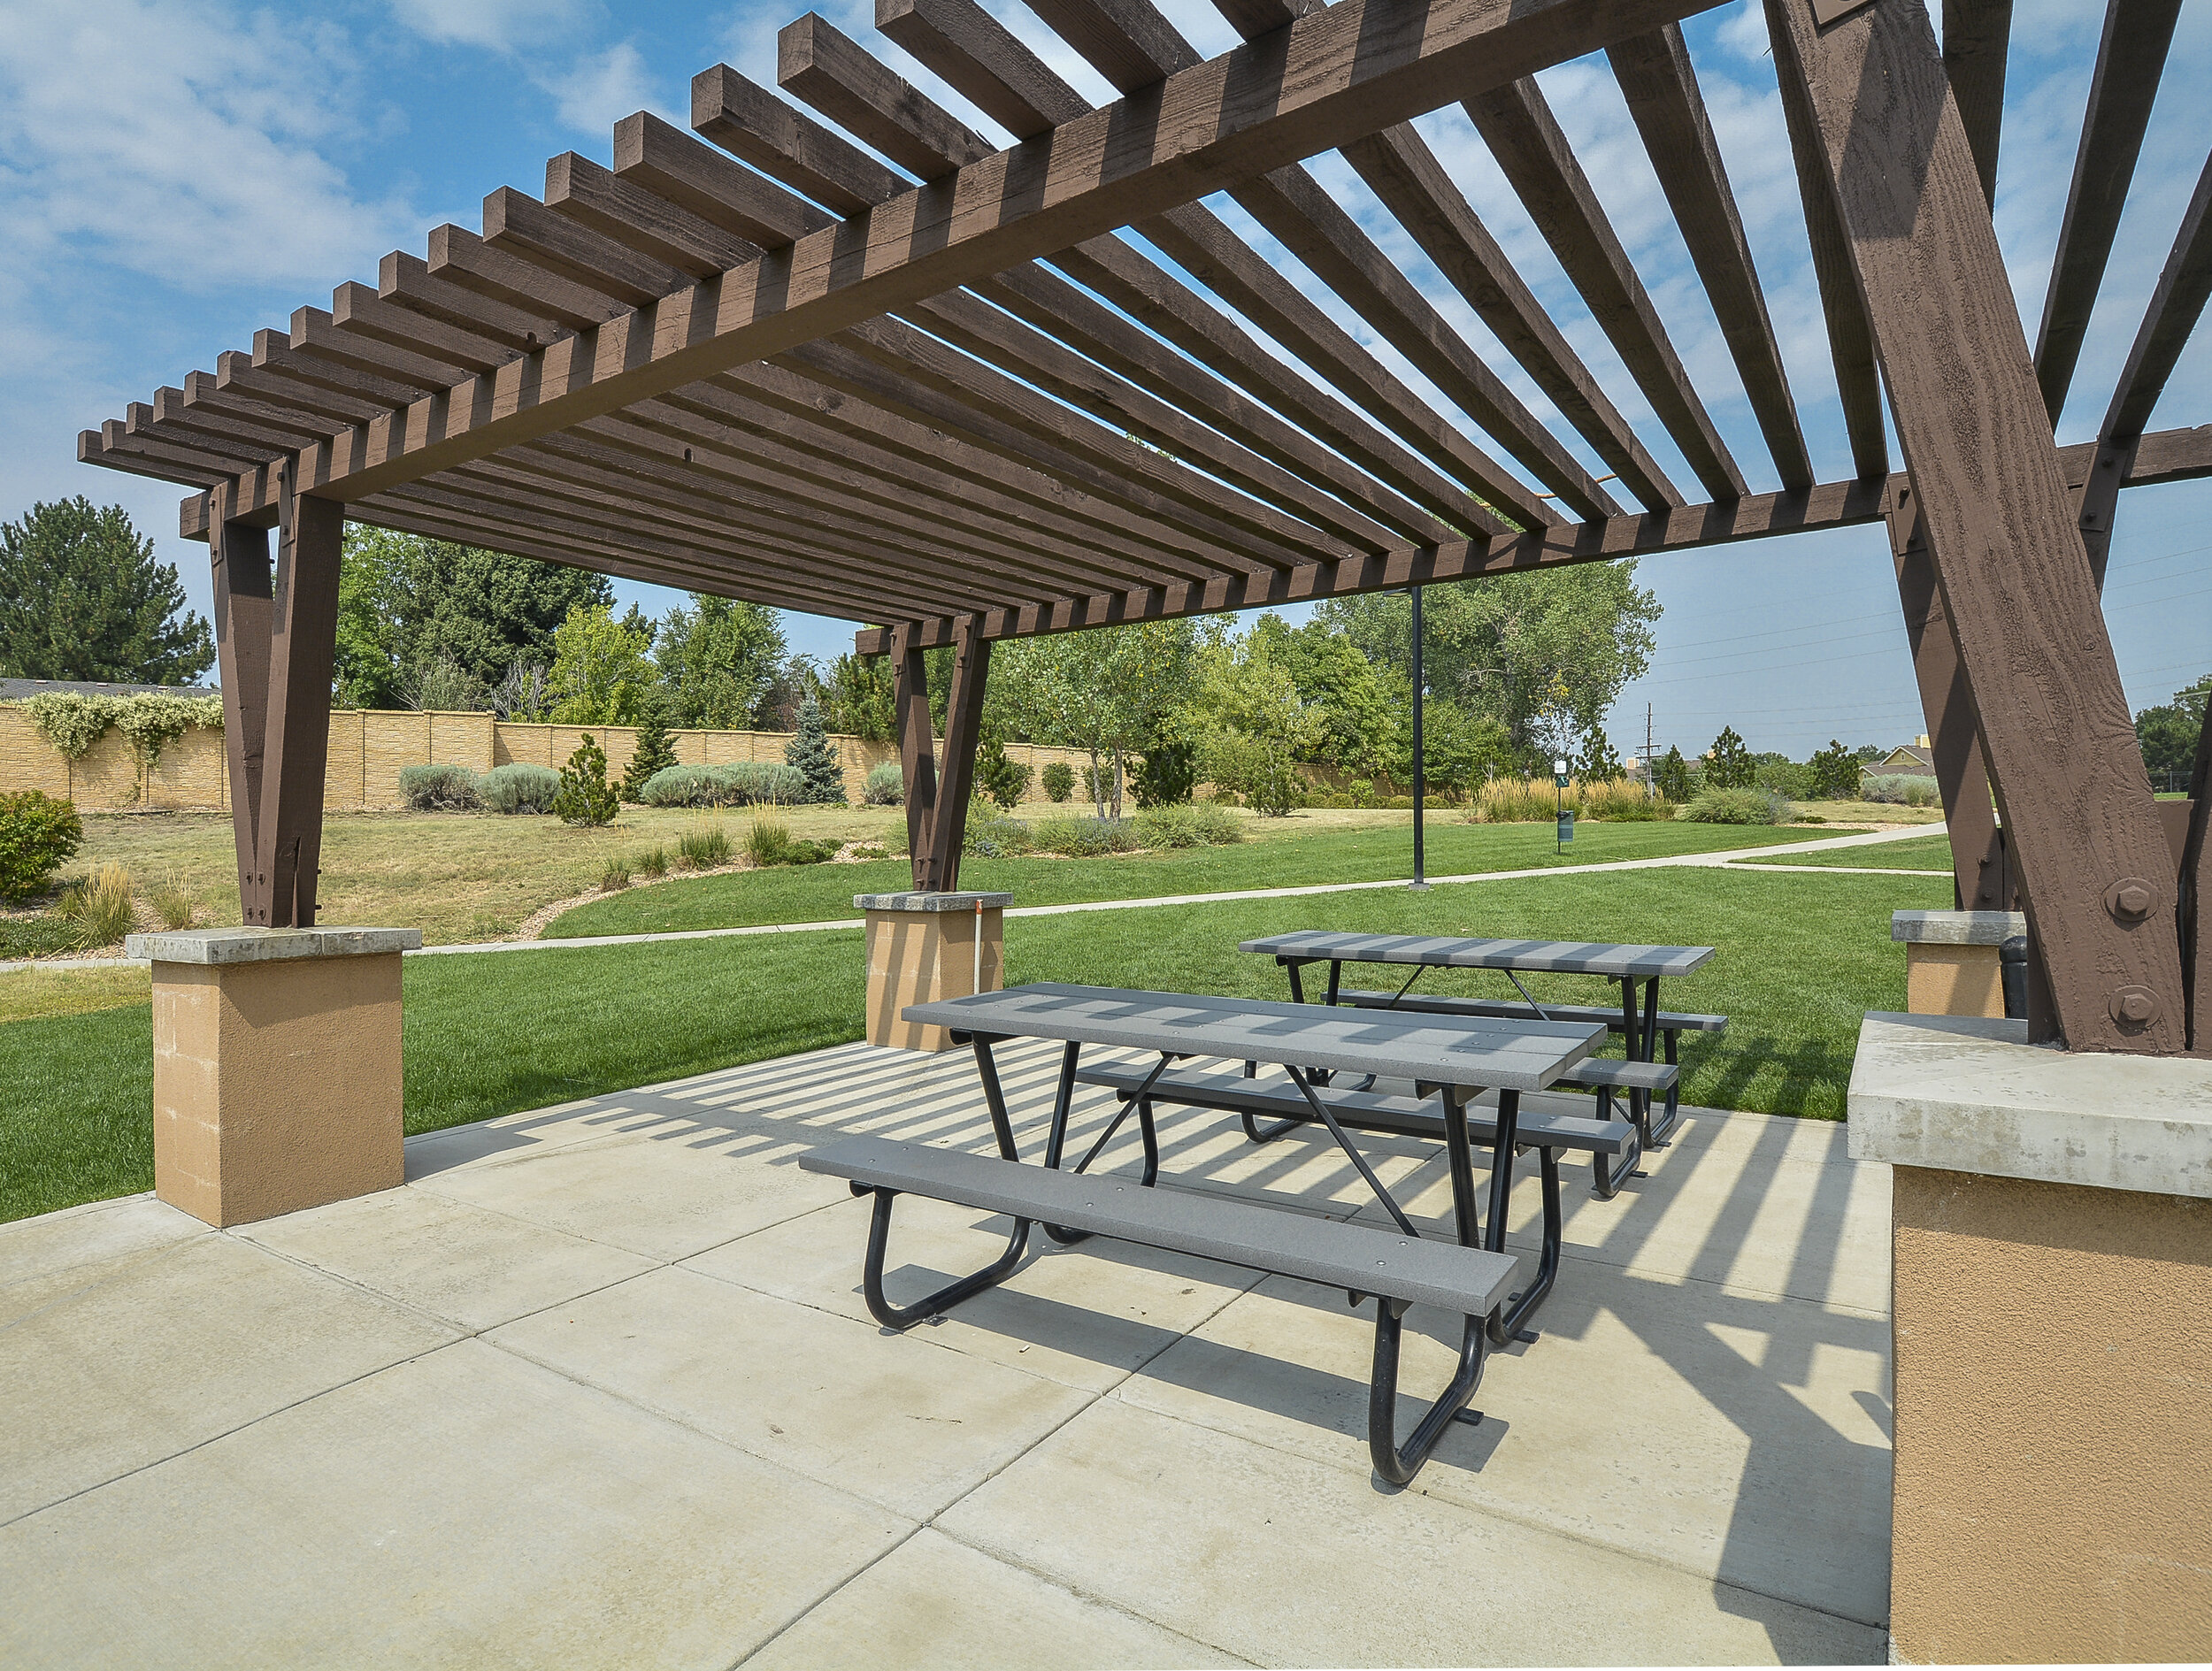 22 Outdoor Picnic Area Runs Along the Private Walking Path Leading the.jpg